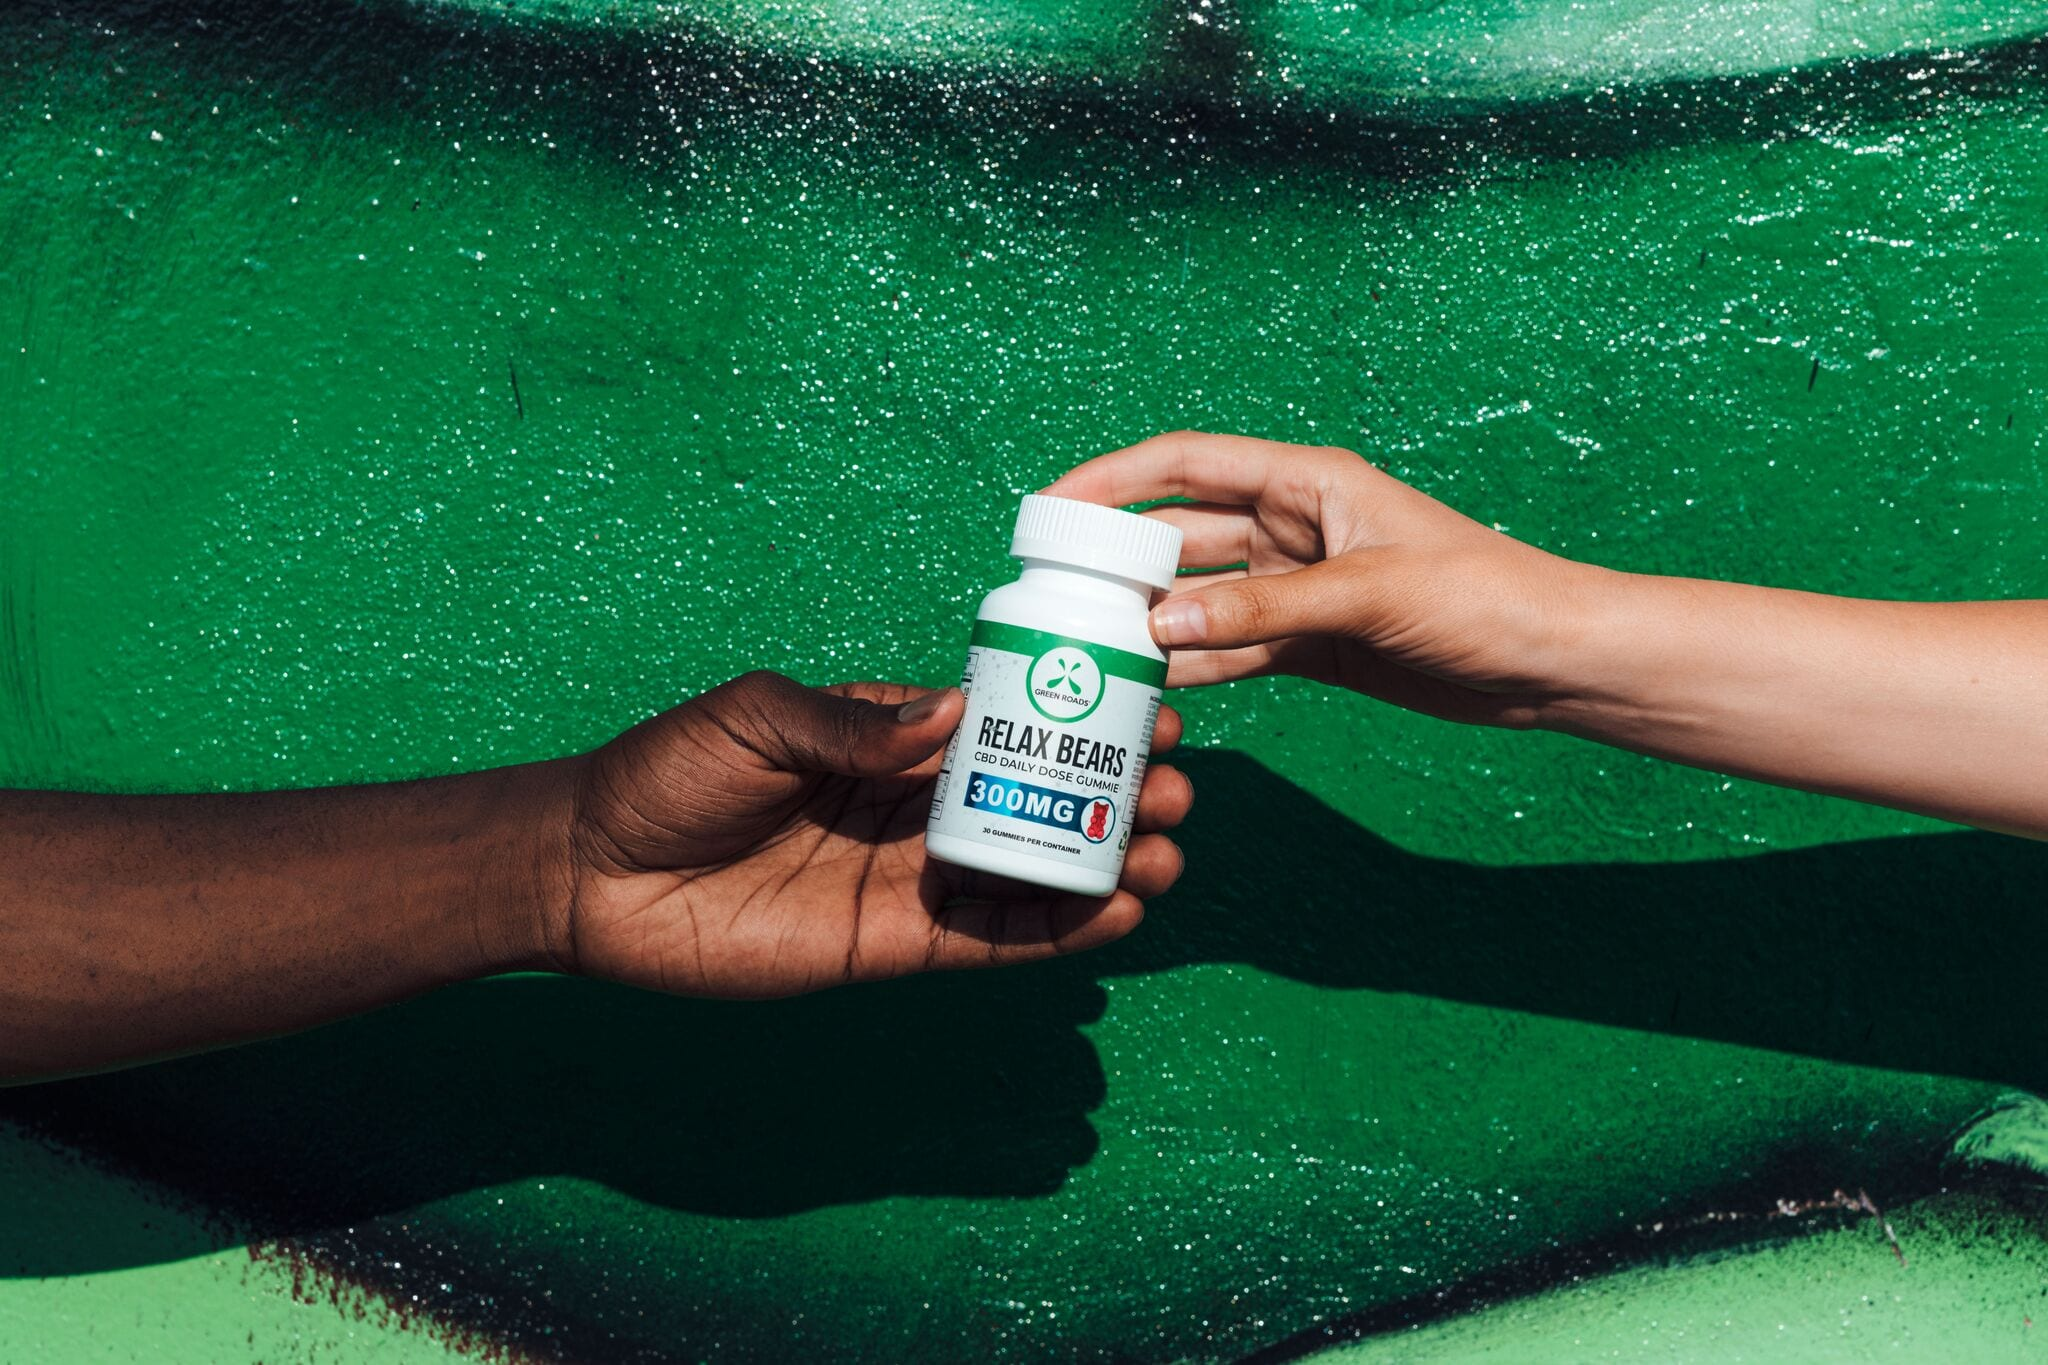 One person, seen from just the arm and hand, as they pass off a bottle of Green Roads Relax Bears to a friend, hand-to-hand. Green Roads Relax Bears combined CBD oil with a sweet taste in a convenient, chewy shape.